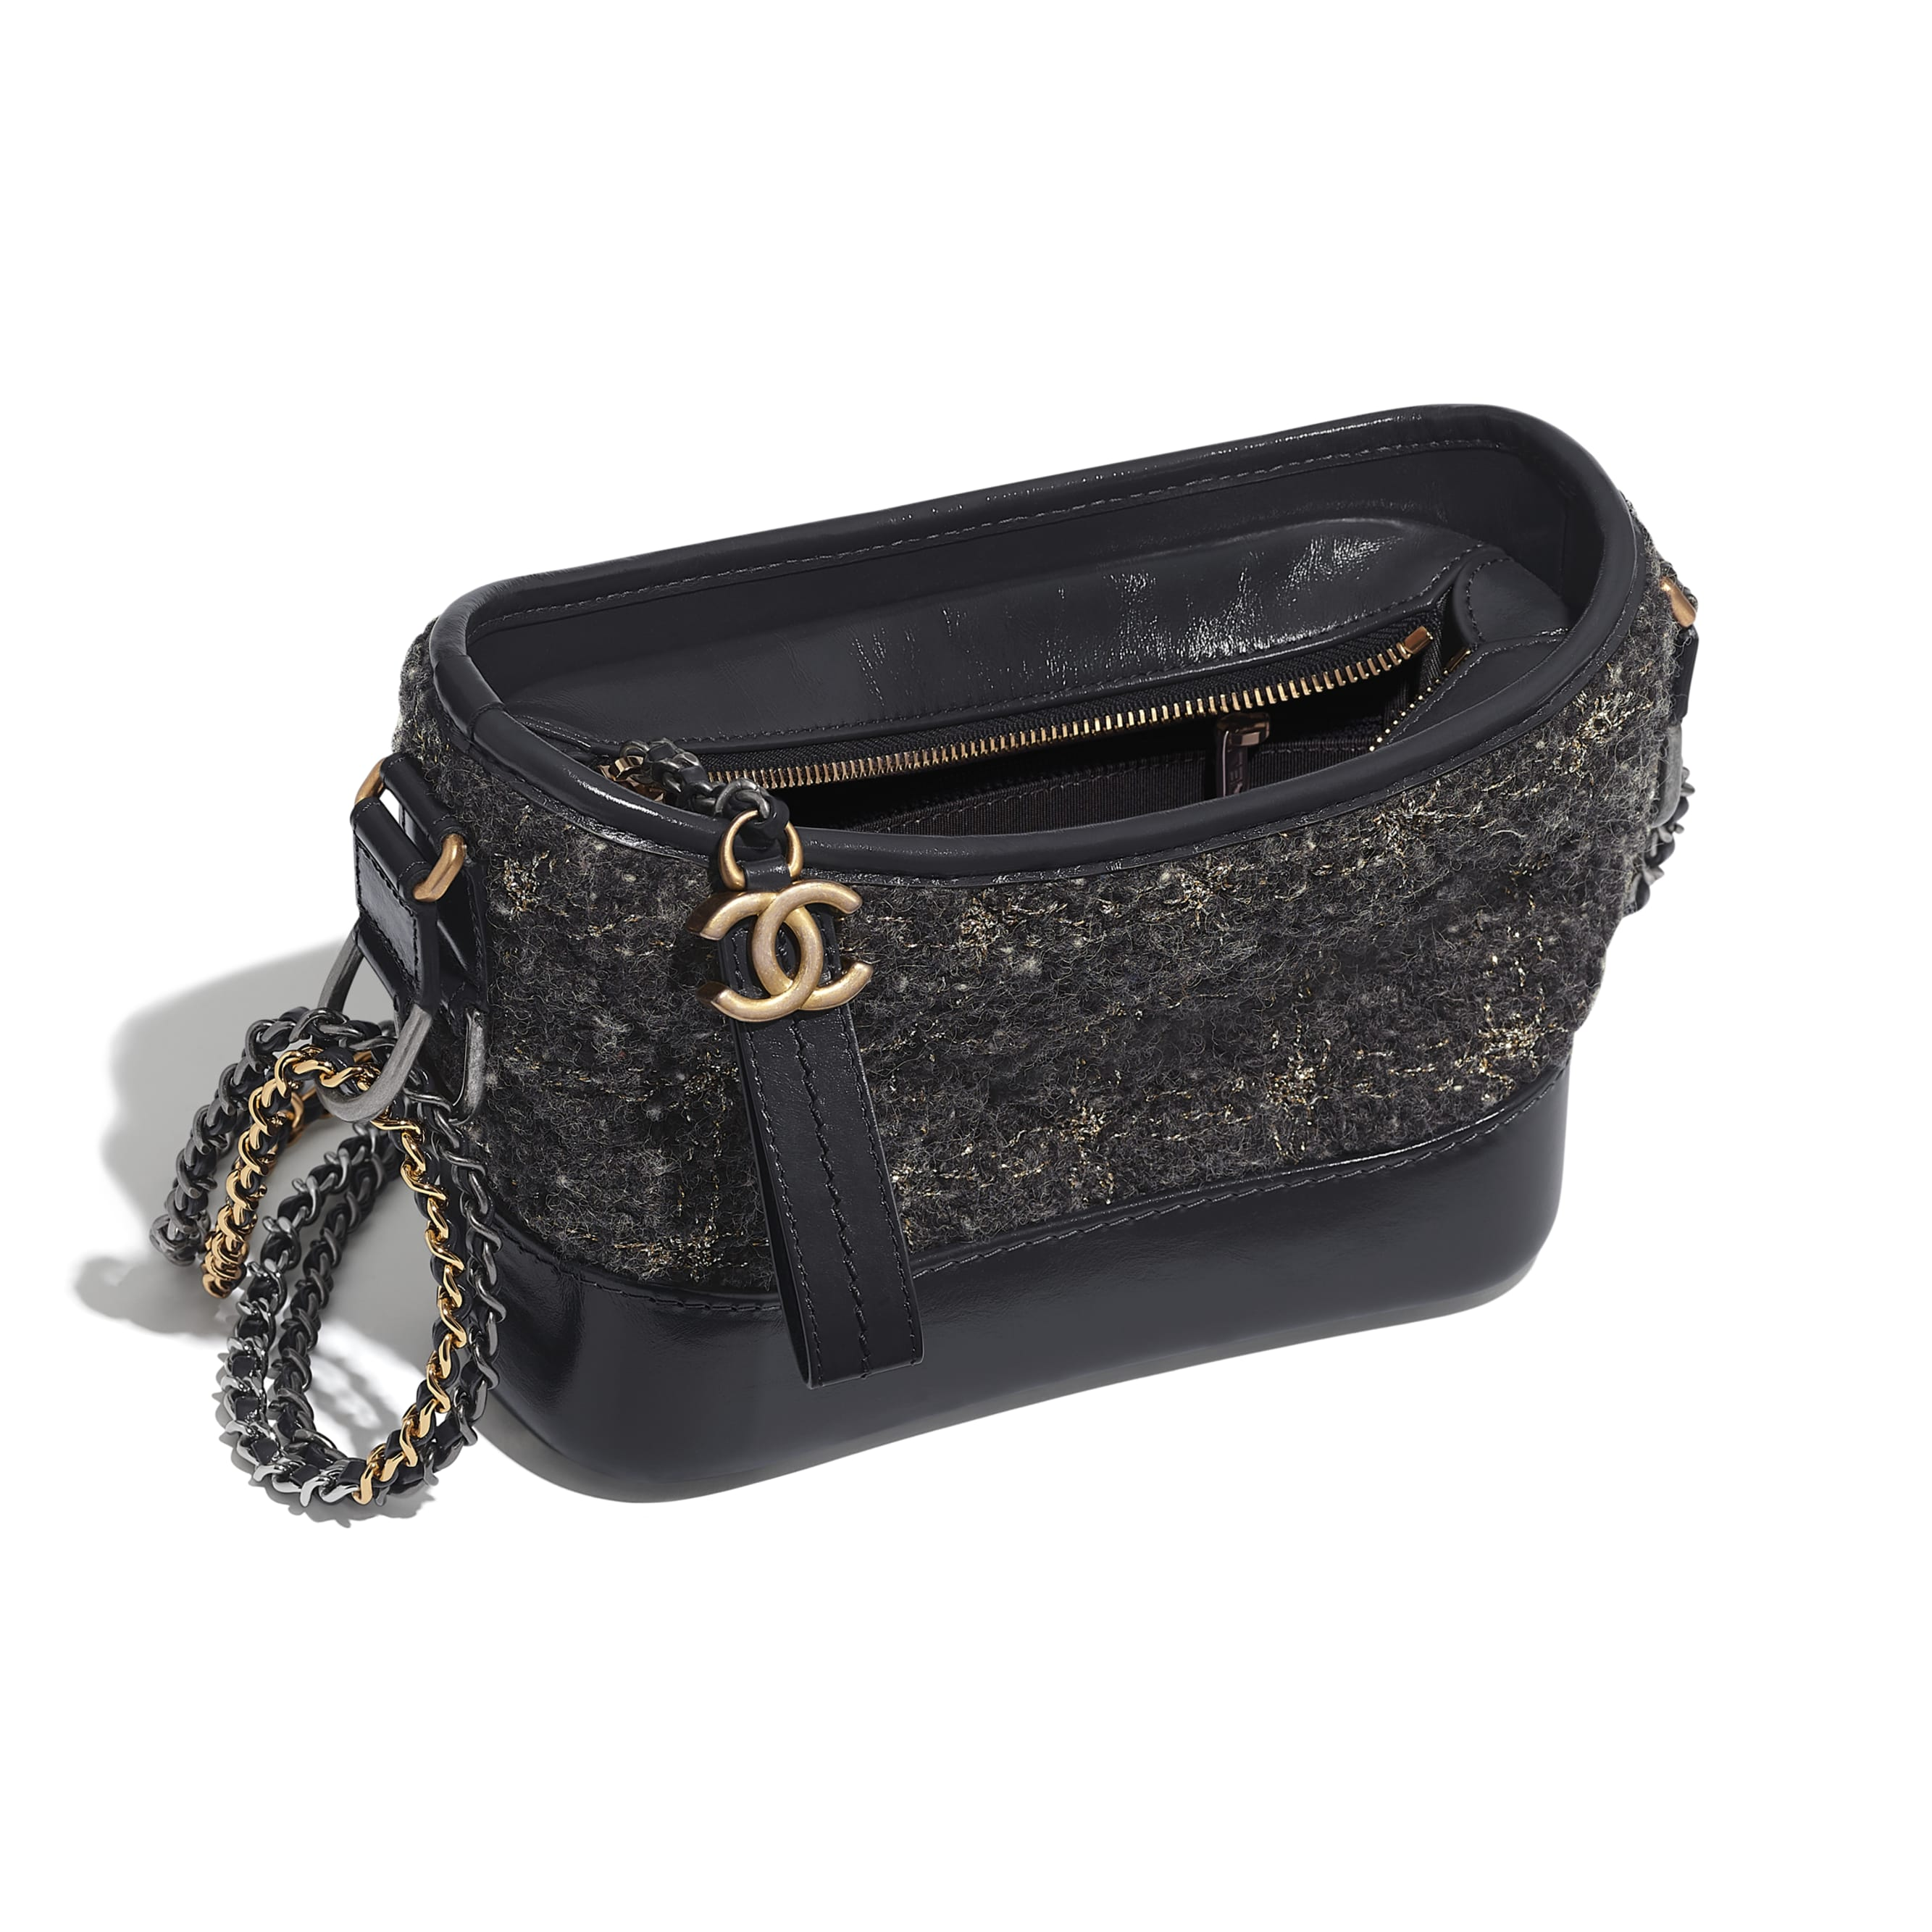 CHANEL'S GABRIELLE Small Hobo Bag - Gray, Golden & Silver - Wool Tweed, Calfskin, Gold-Tone & Silver-Tone Metal - Other view - see standard sized version